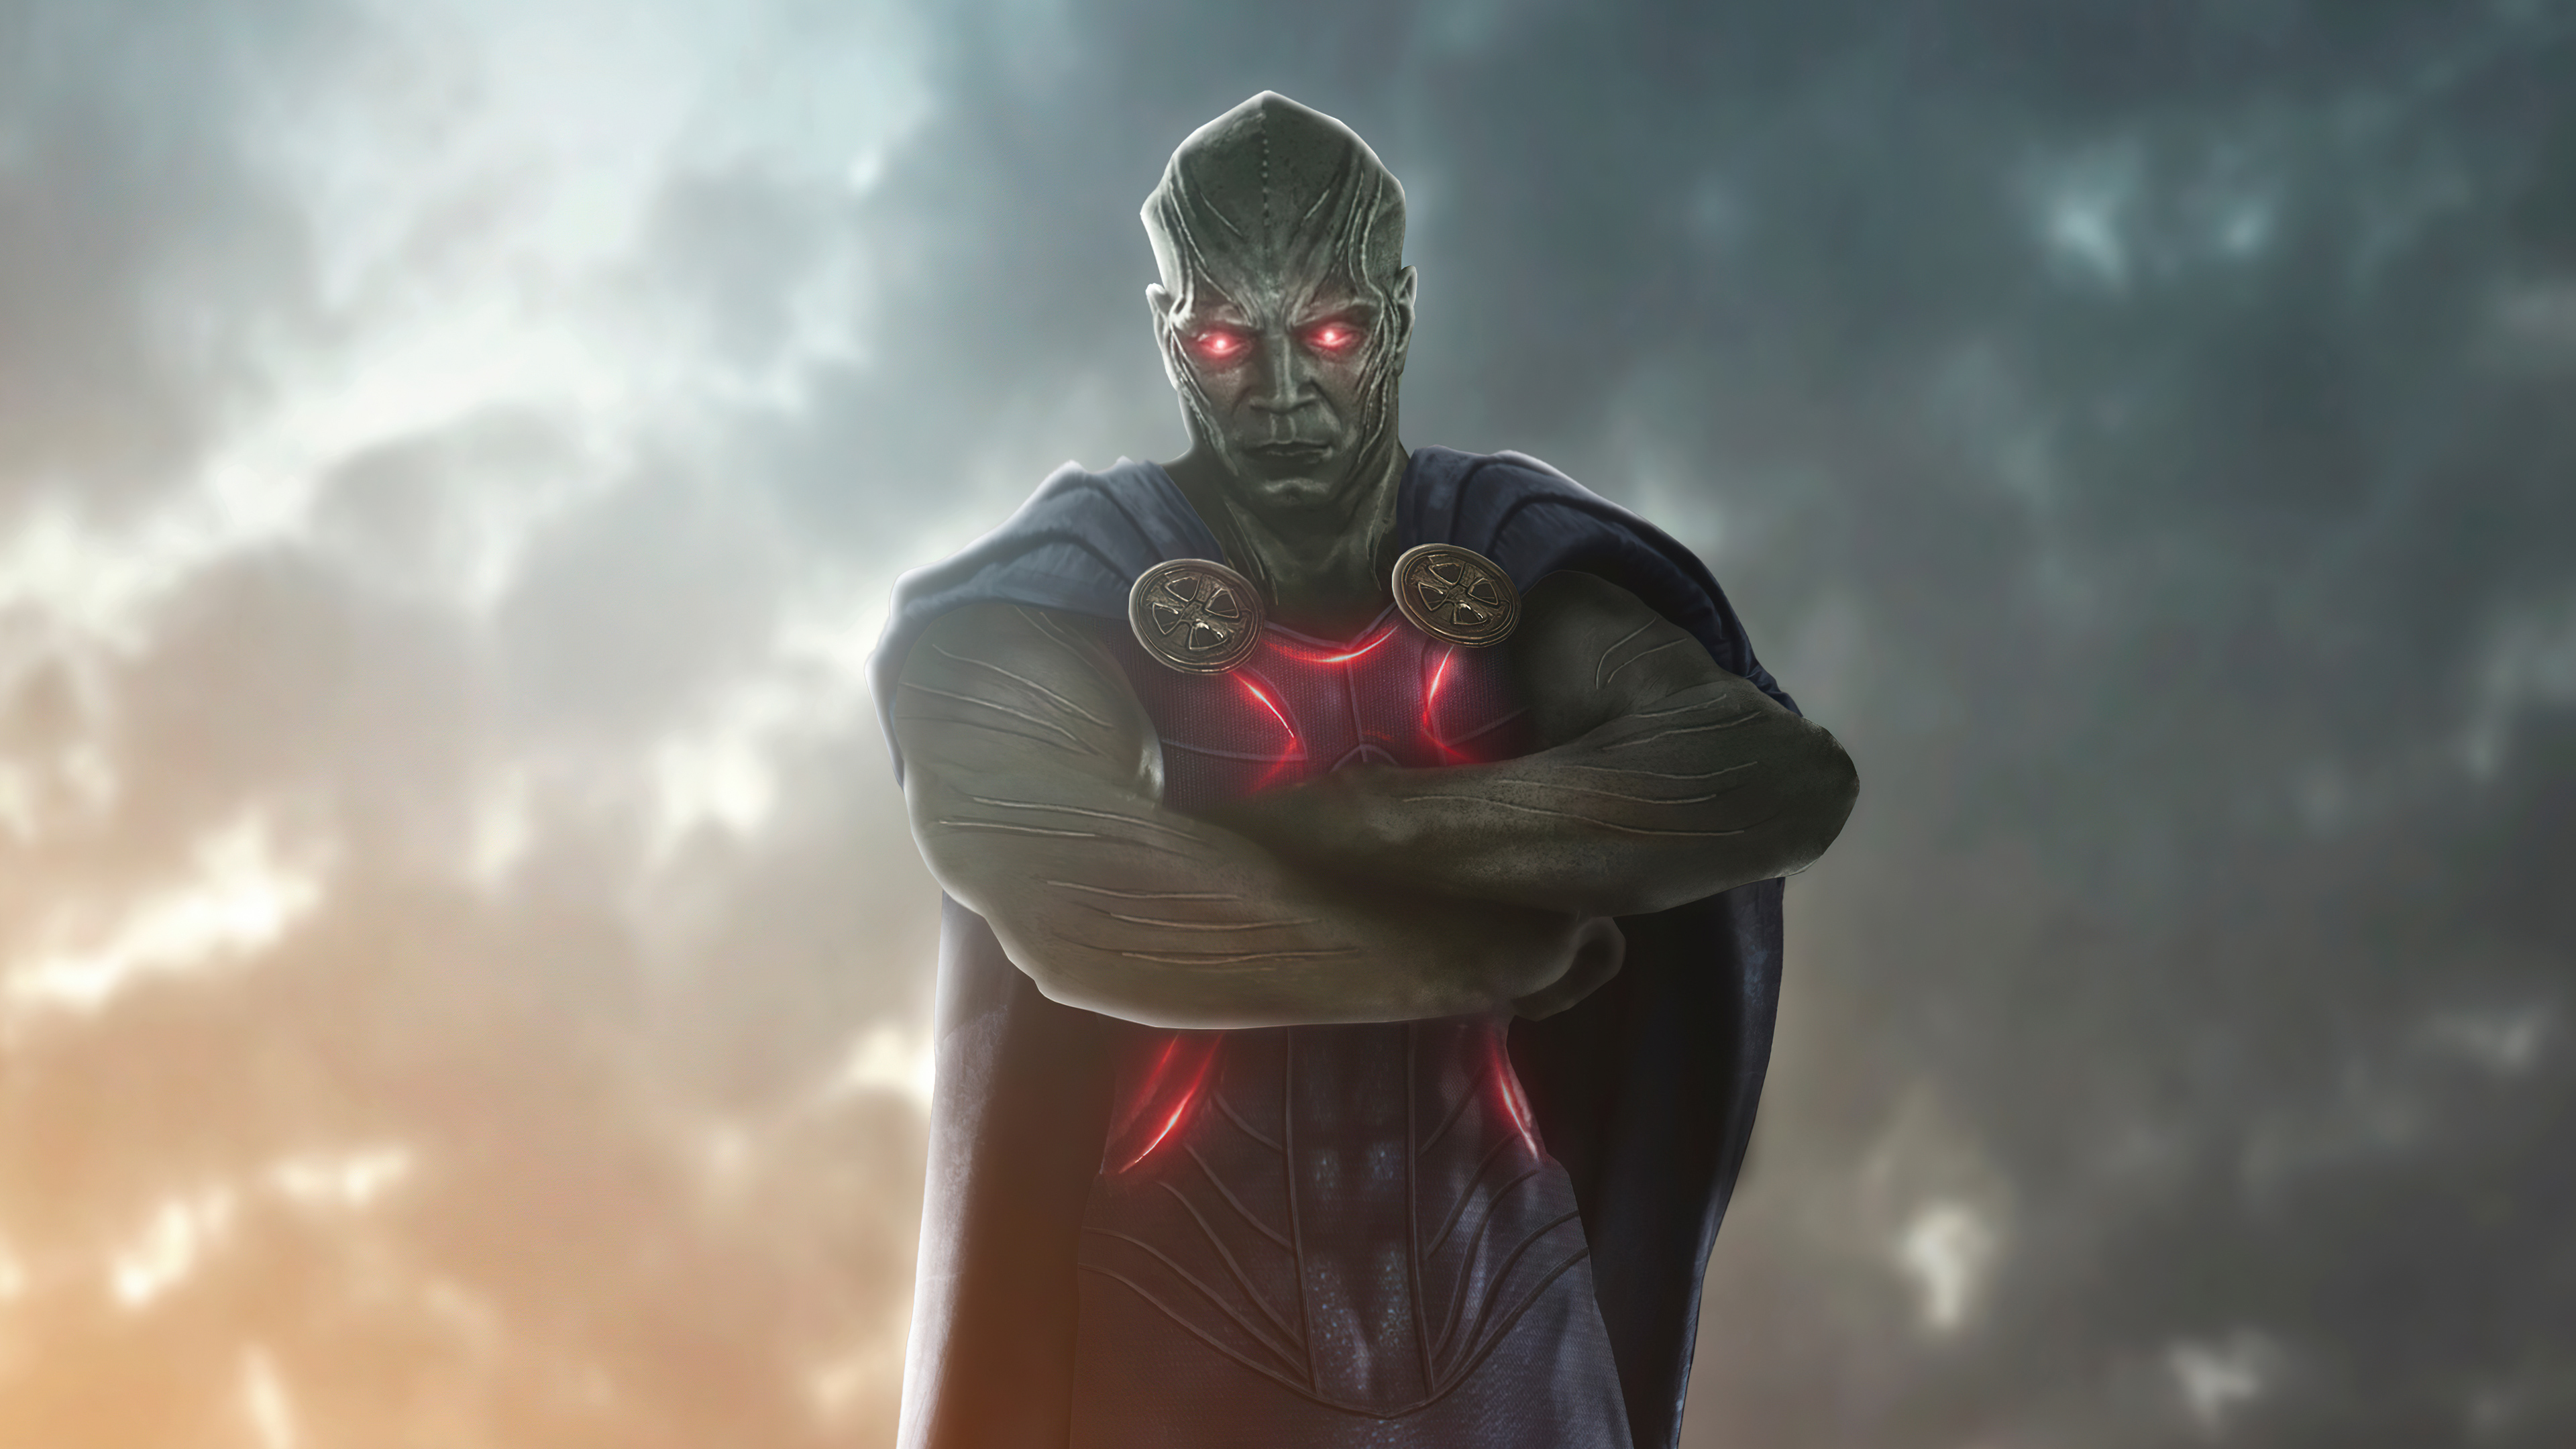 zack snyders justice league martian manhunter 4k 1618166347 - Zack Snyders Justice League Martian Manhunter 4k - Zack Snyders Justice League Martian Manhunter 4k wallpapers